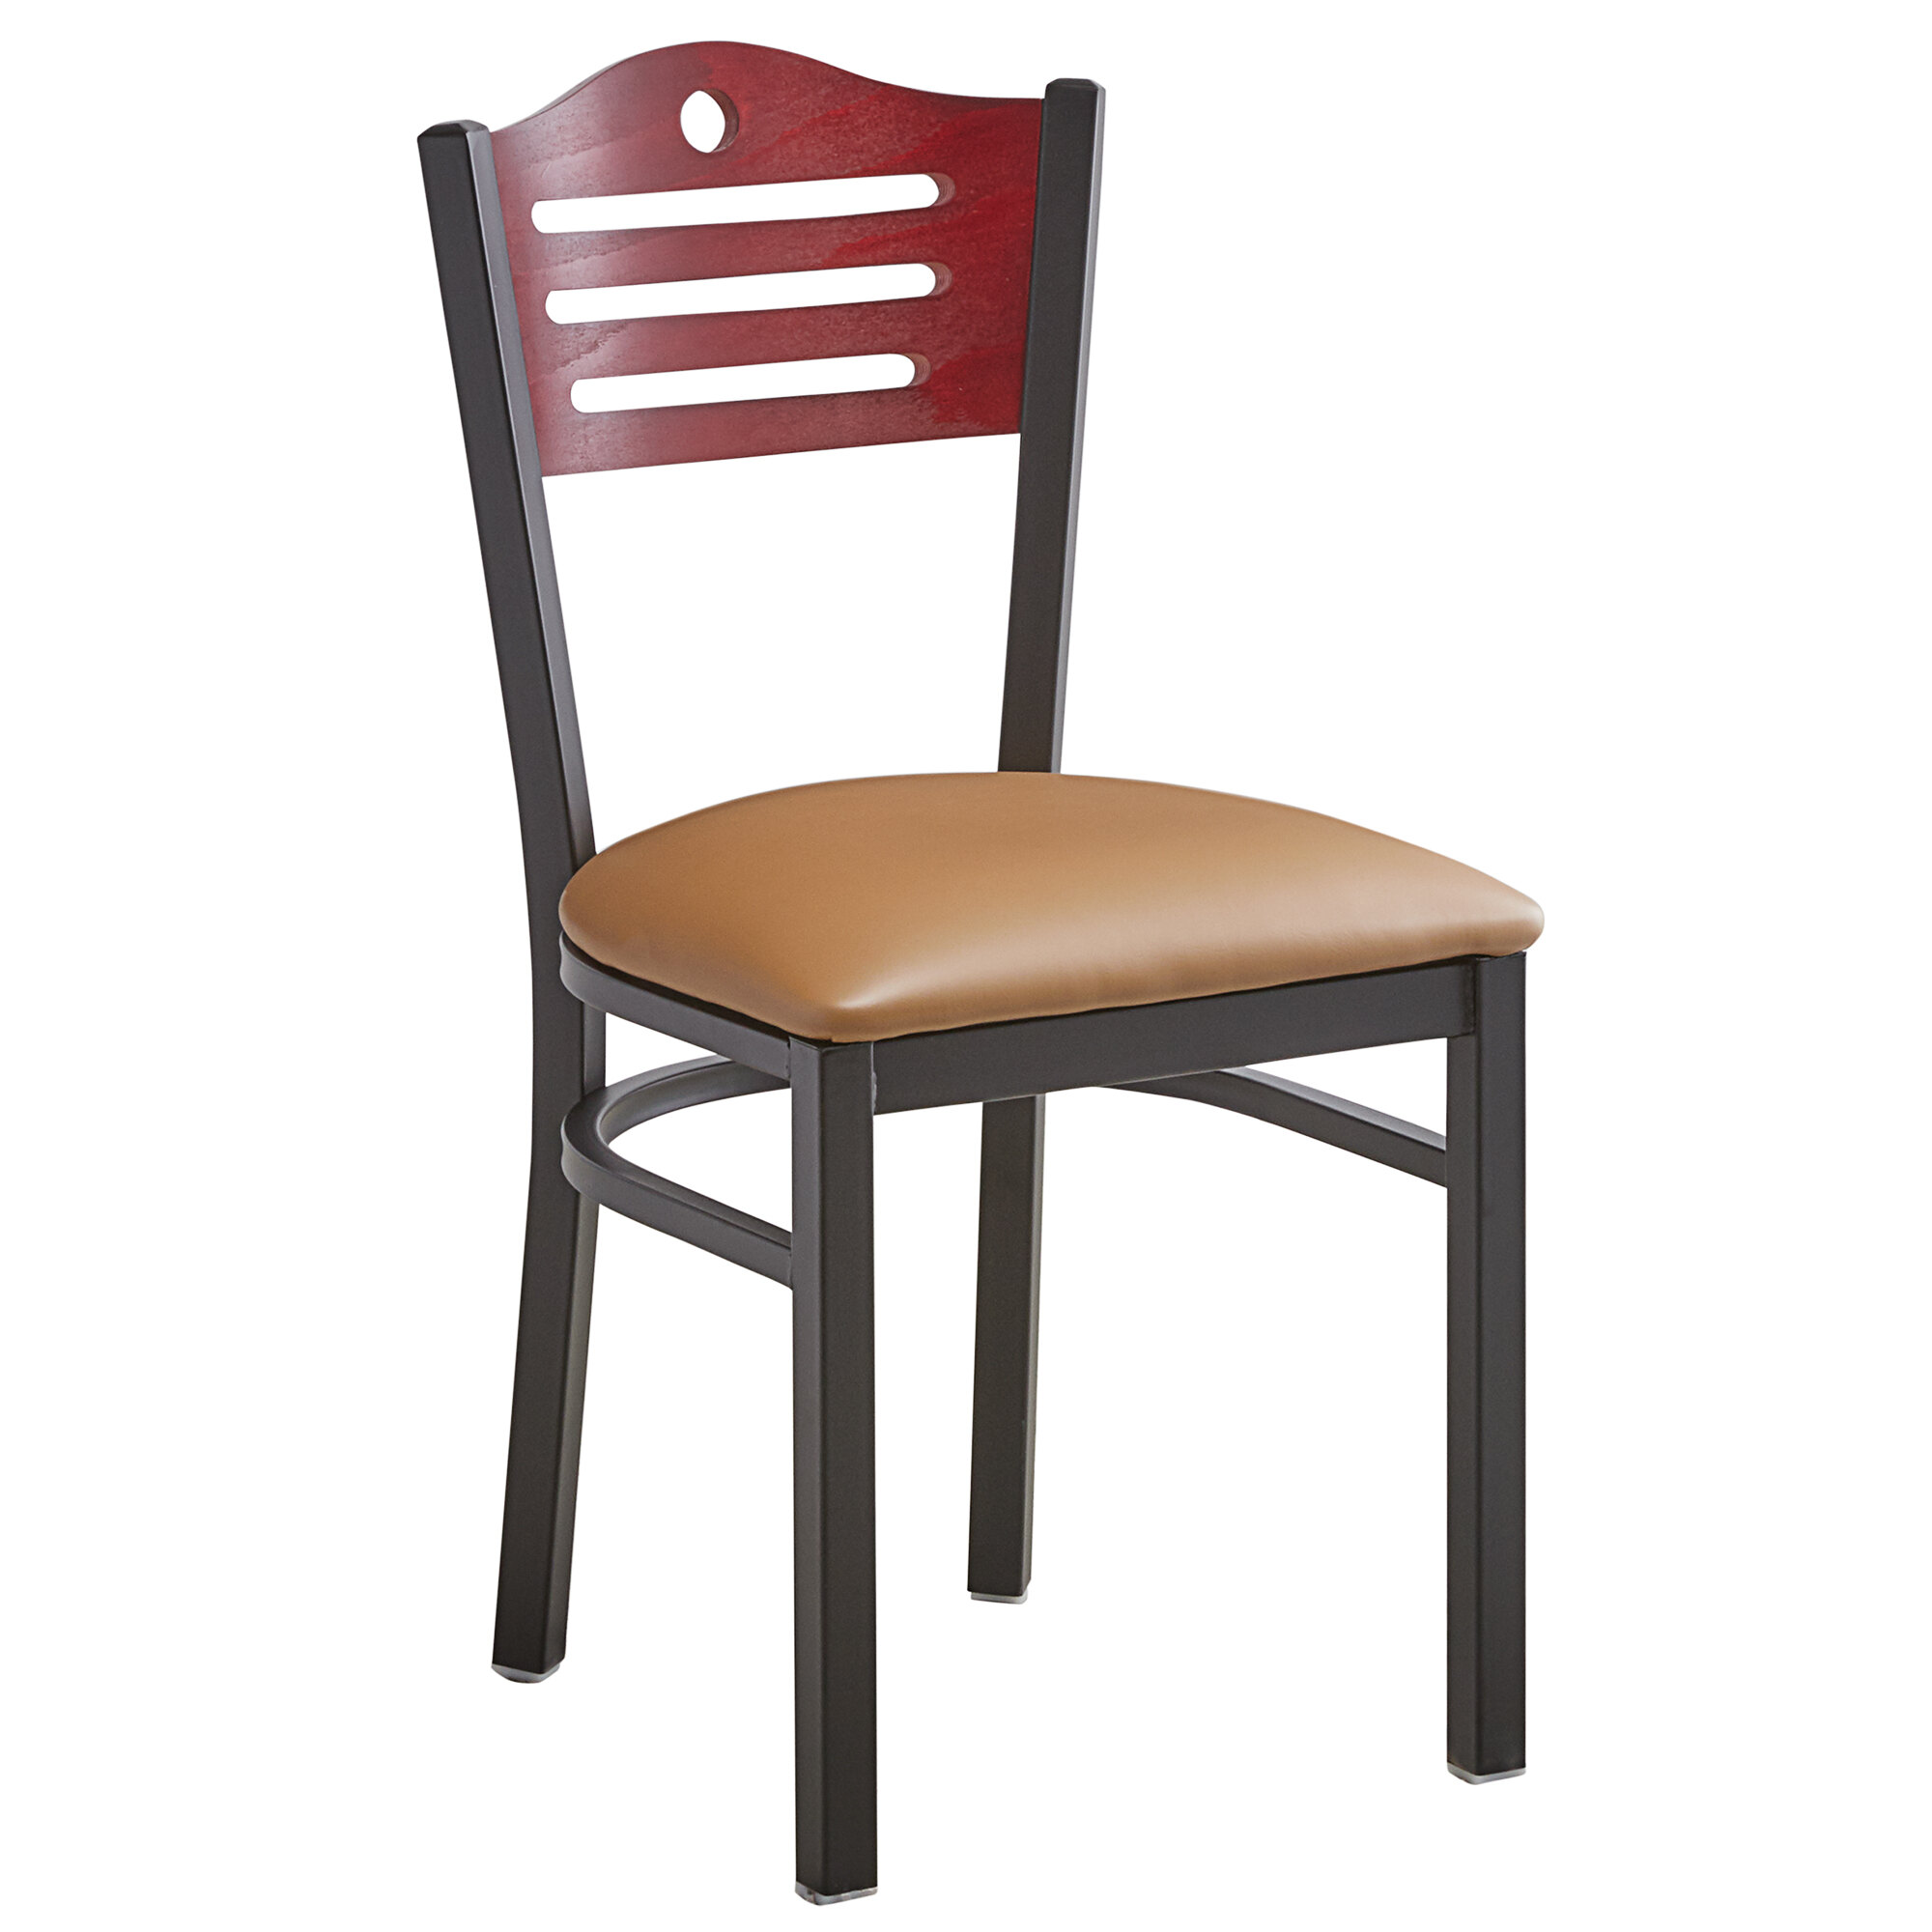 #182 - Slat Back Design Restaurant Metal Chair with Mahogany Wood Back and Light Brown Vinyl Seat